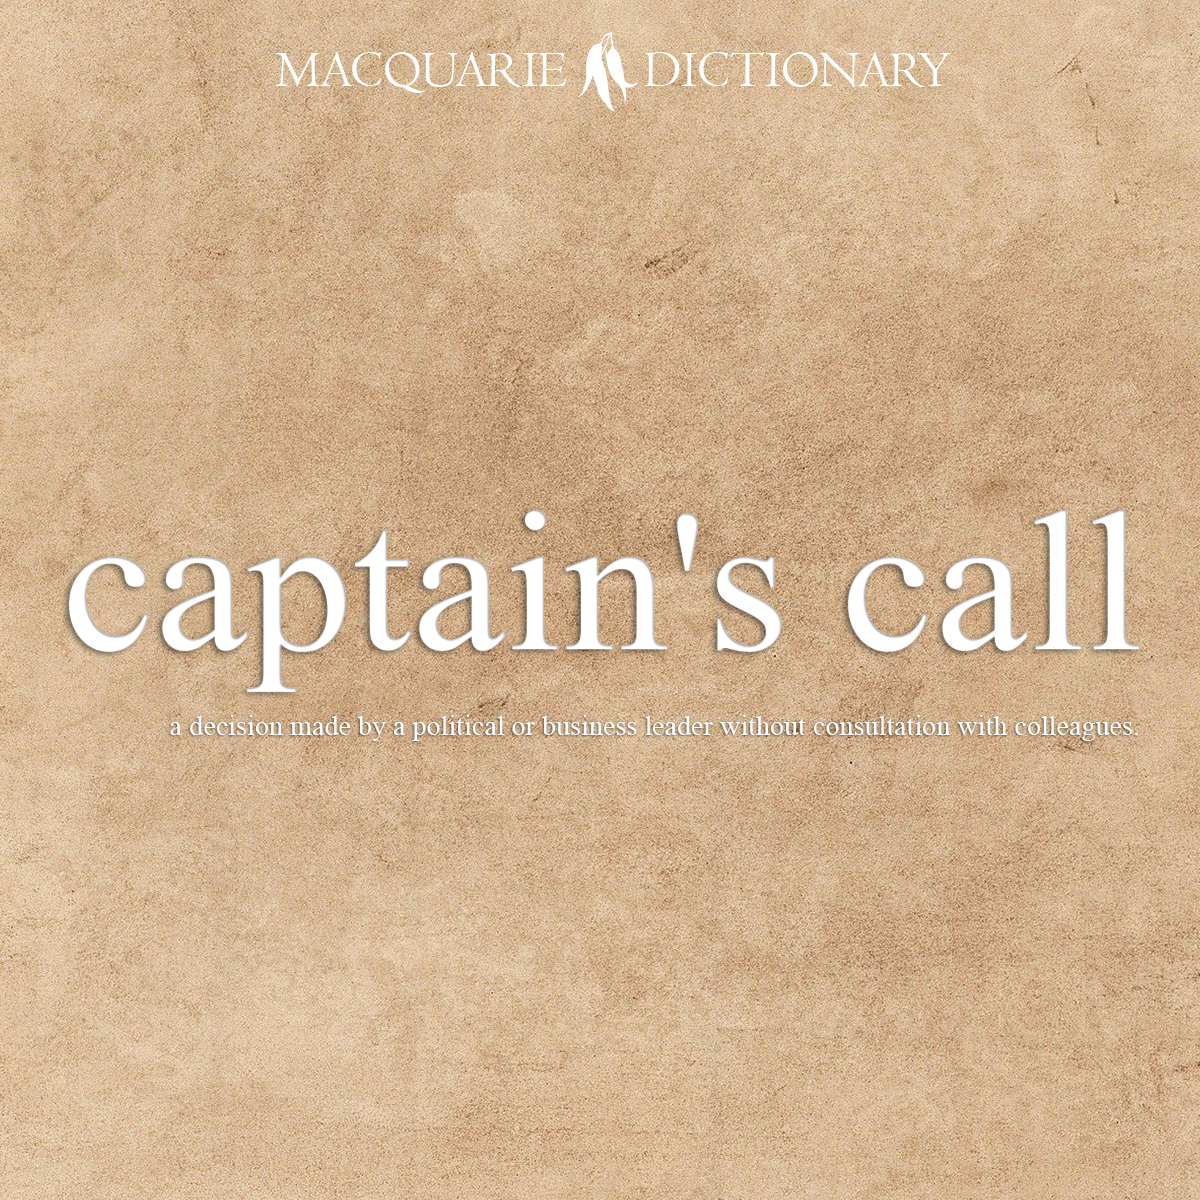 captain's call - a decision made by a political or business leader without consultation with colleagues.